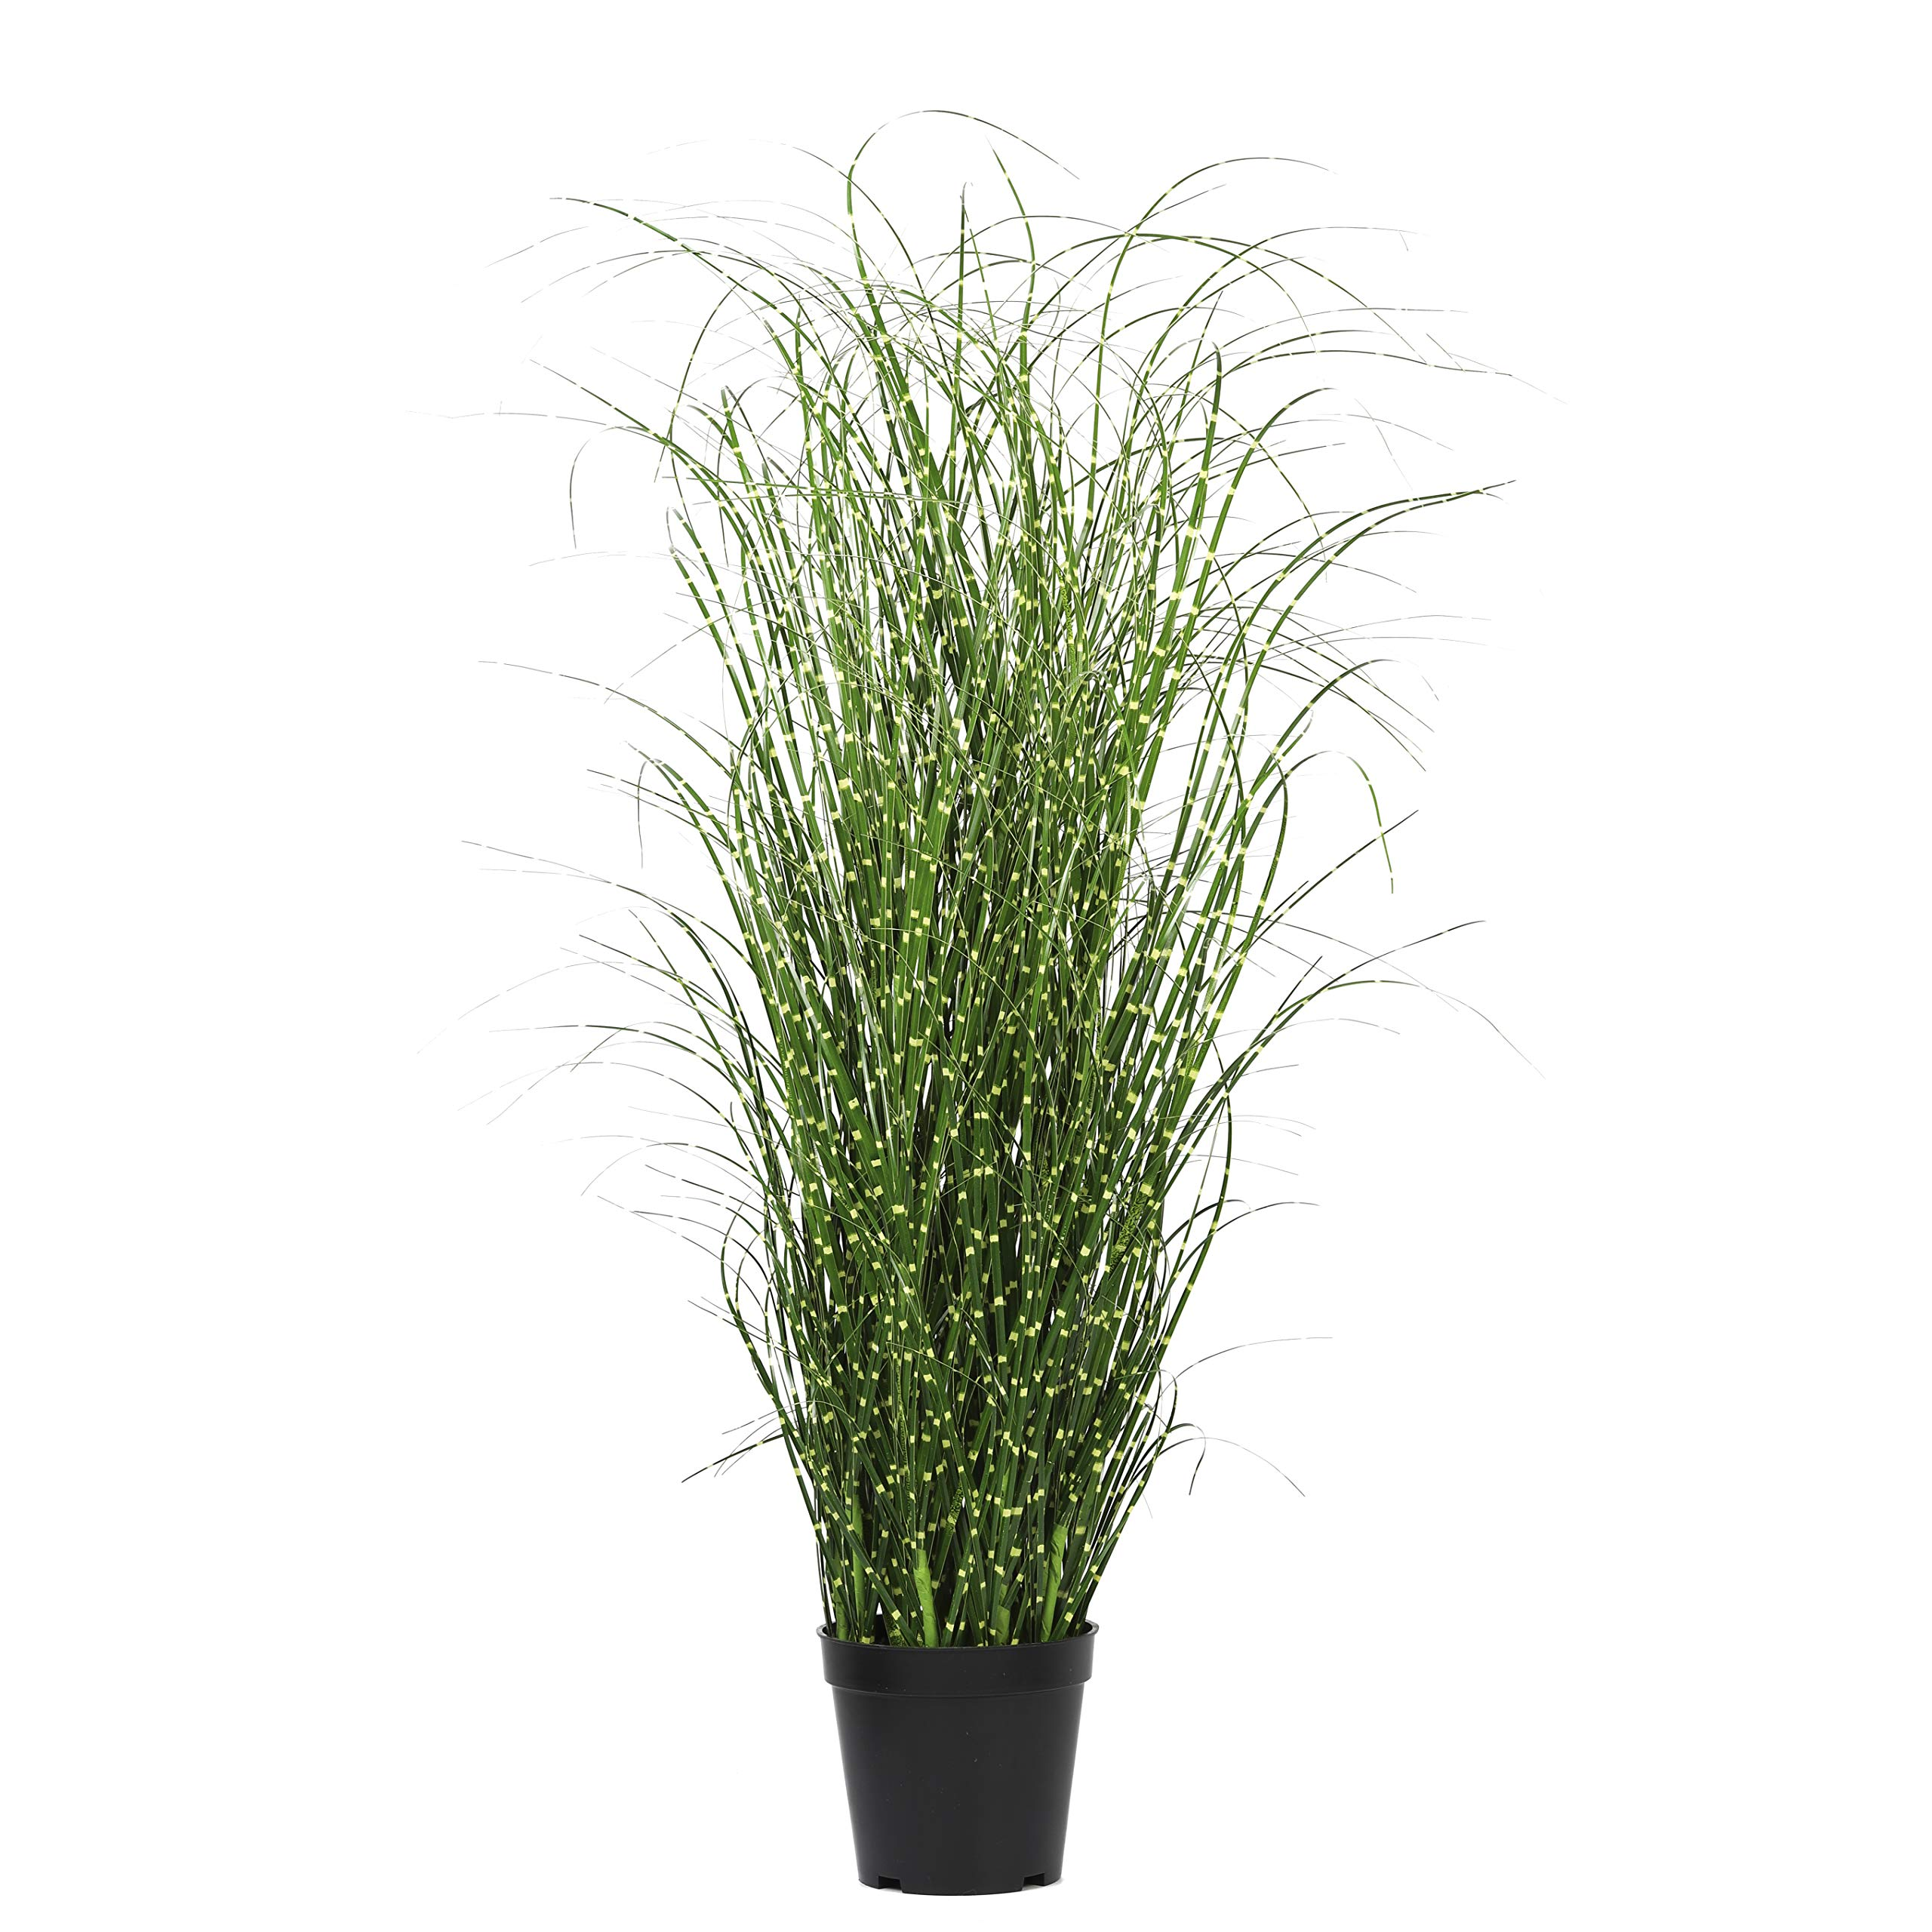 NCYP 31.4'' Large Fake Potted Tall Artificial Dwarf Zebra Grass Natural Looking Faux Silvergrass Morning Light,Ornamental Plant,for Home Office Floor Decor Gift by NCYP